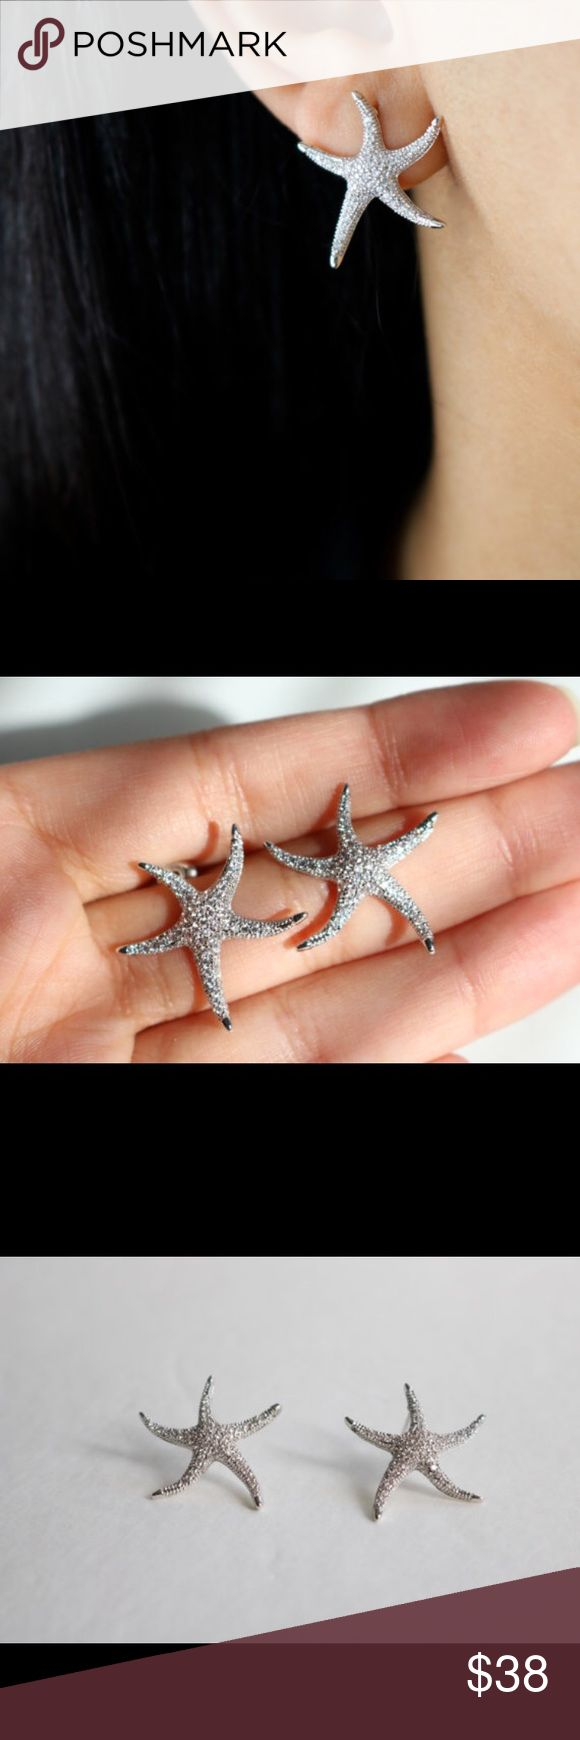 White Gold Plated Sparkly Starfish Earrings Boutique